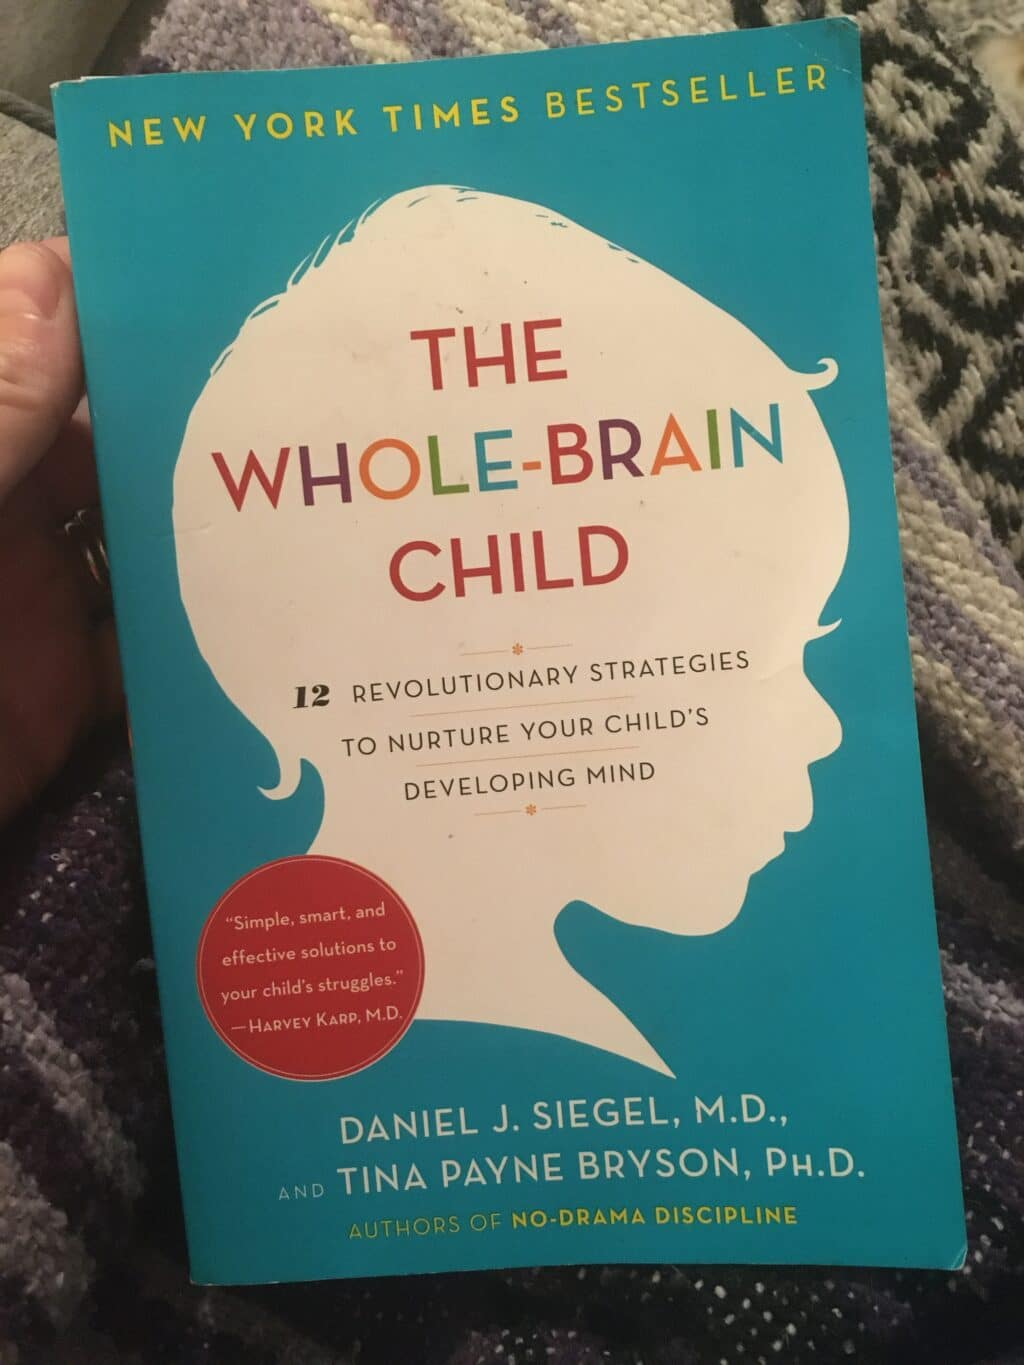 One of my favorite parenting books: The Whole Brain Child